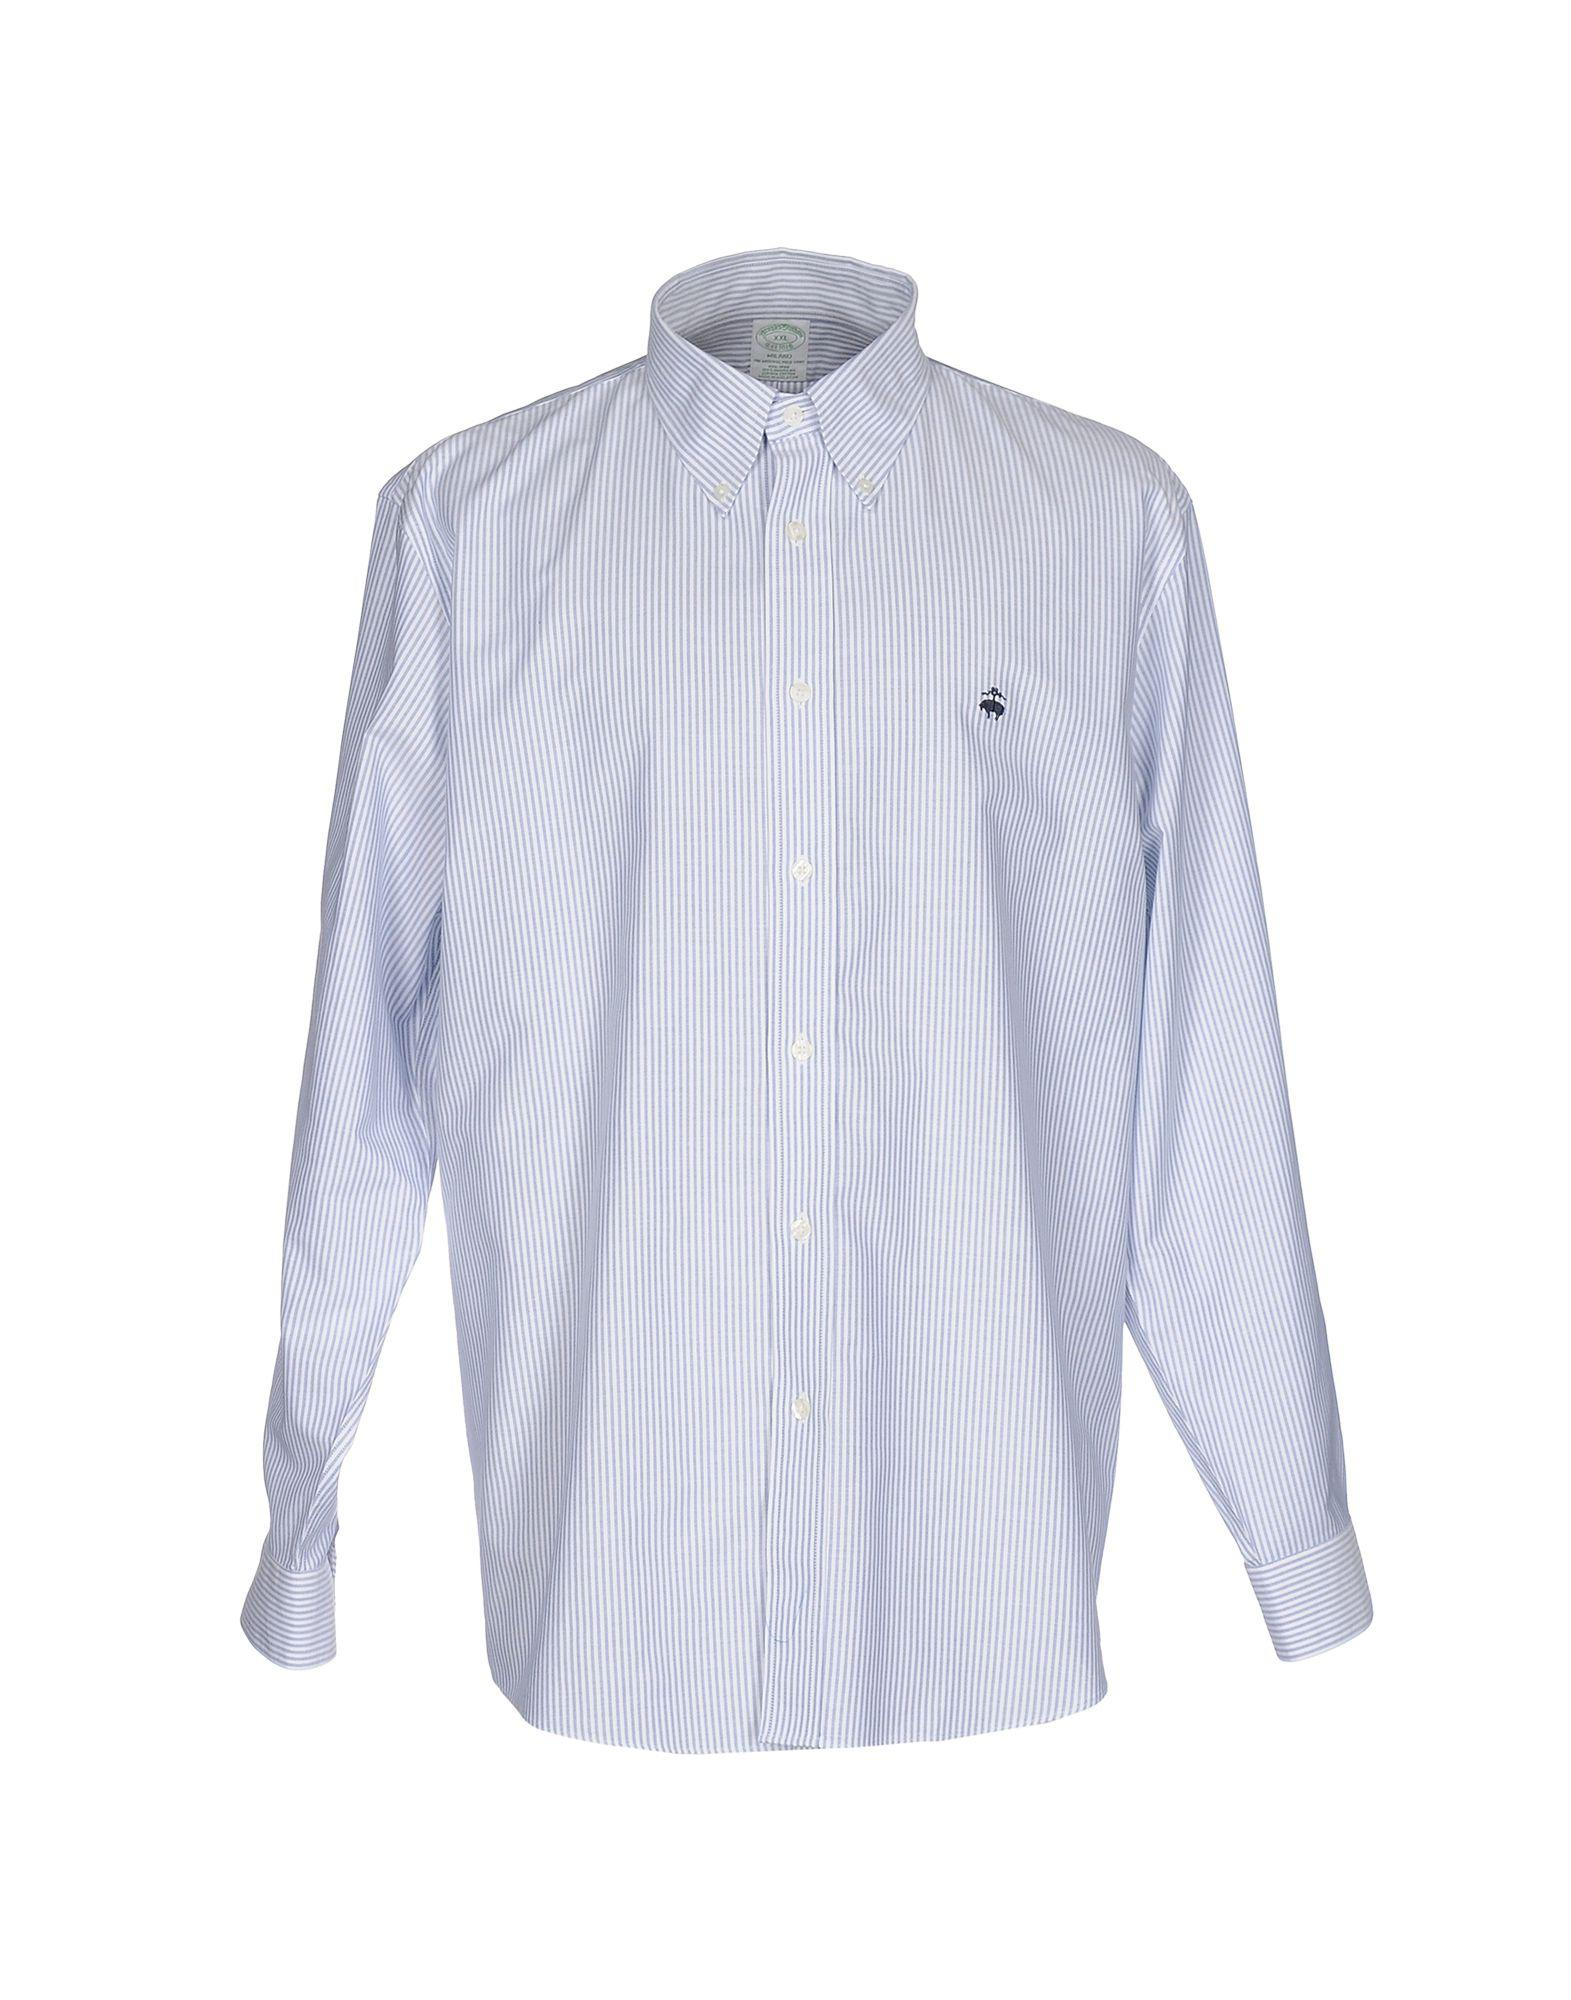 lyst brooks brothers shirts in blue for men save 71